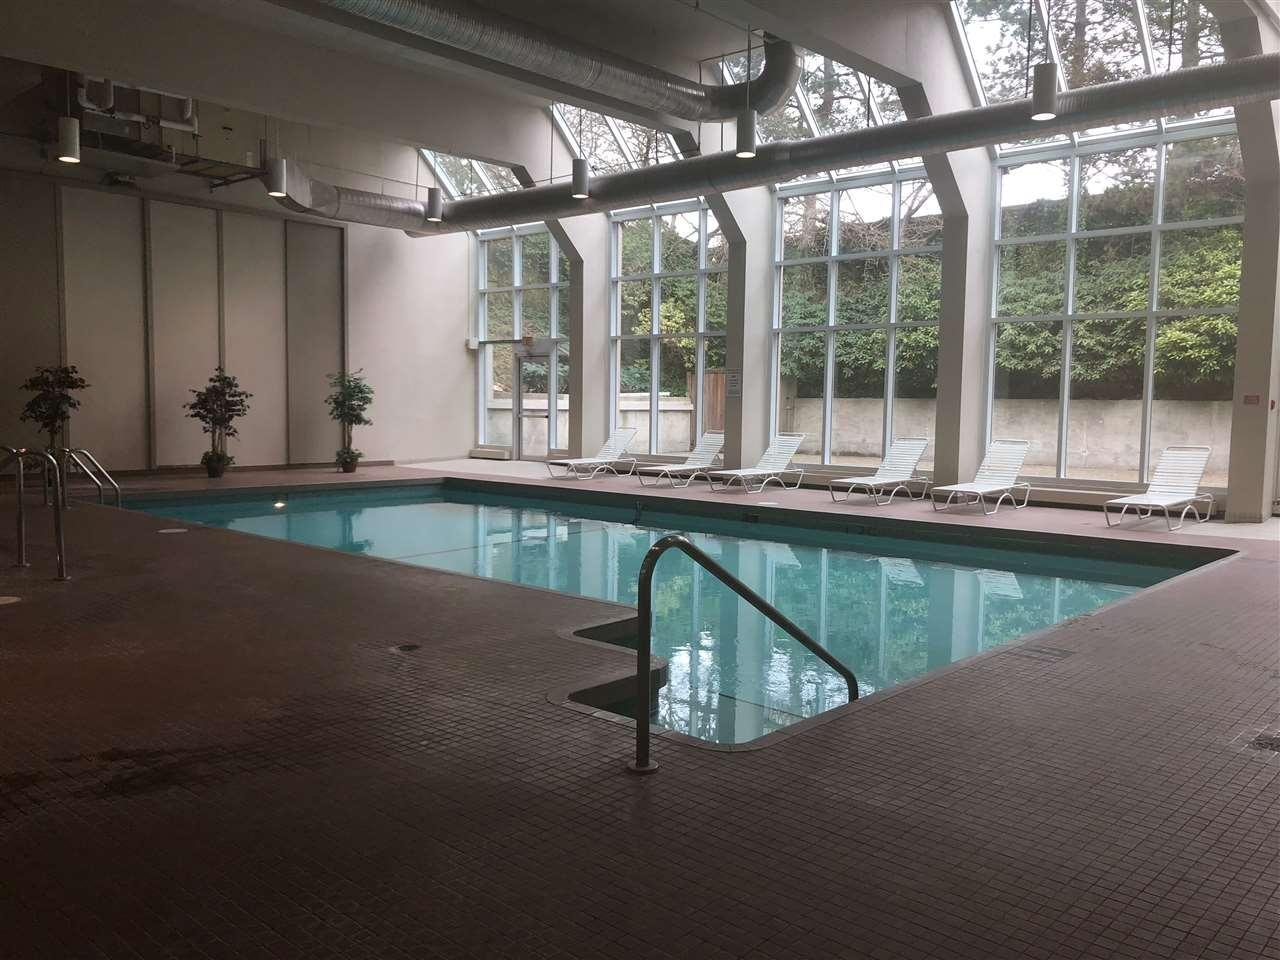 1905 - 6070 McMurray Avenue, Burnaby - 1 bed, 1 bath - For Sale ...